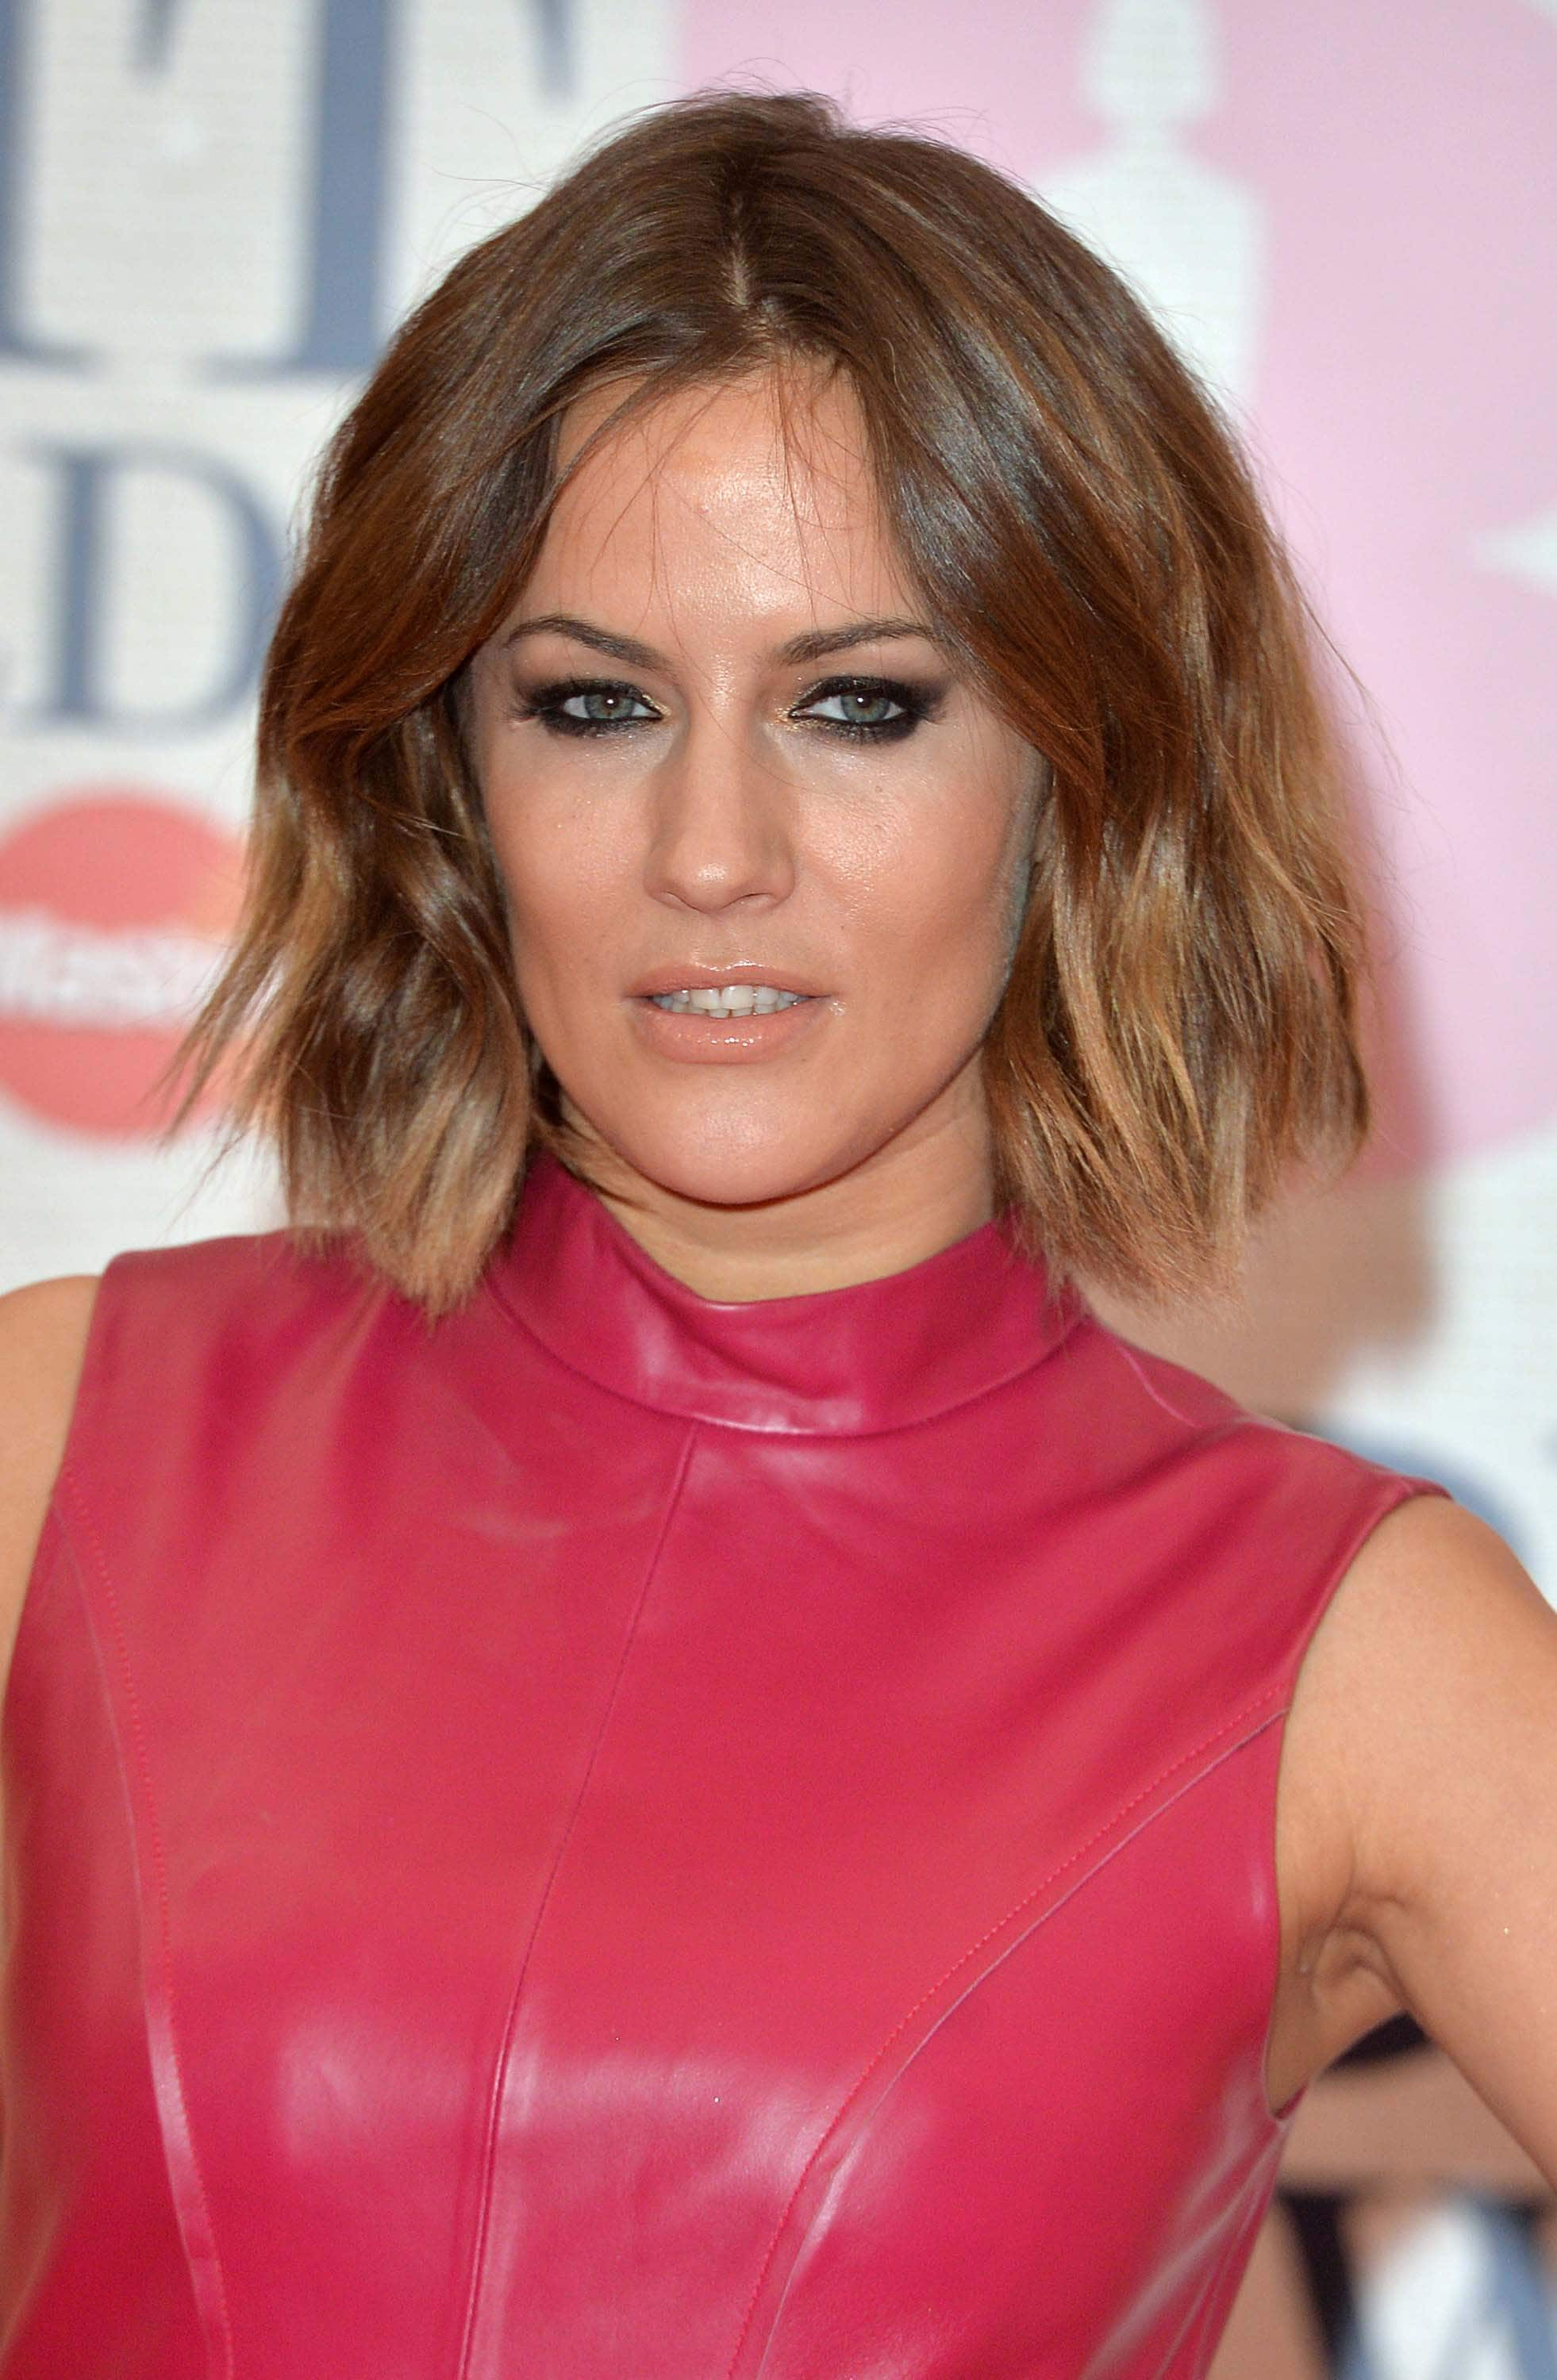 dip dye hair styles dip dyed hair ideas our favourite a list looks gallery 3959